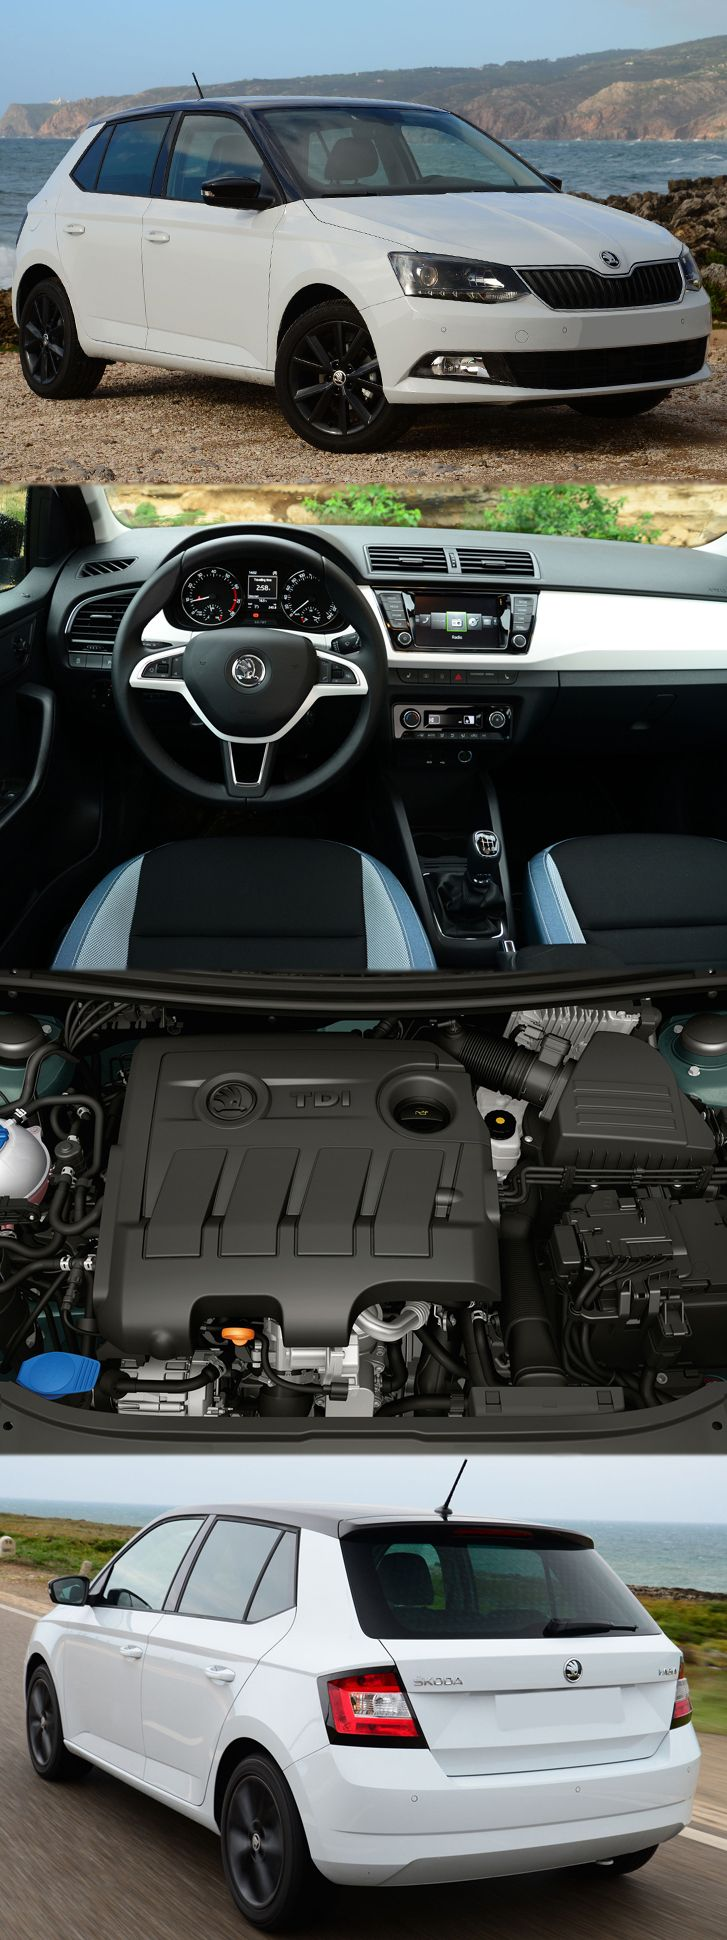 The Skoda Fabia – A Combination of Great Practicality and Value For more details at: https://www.enginetrust.co.uk/series/skoda/fabia/engines